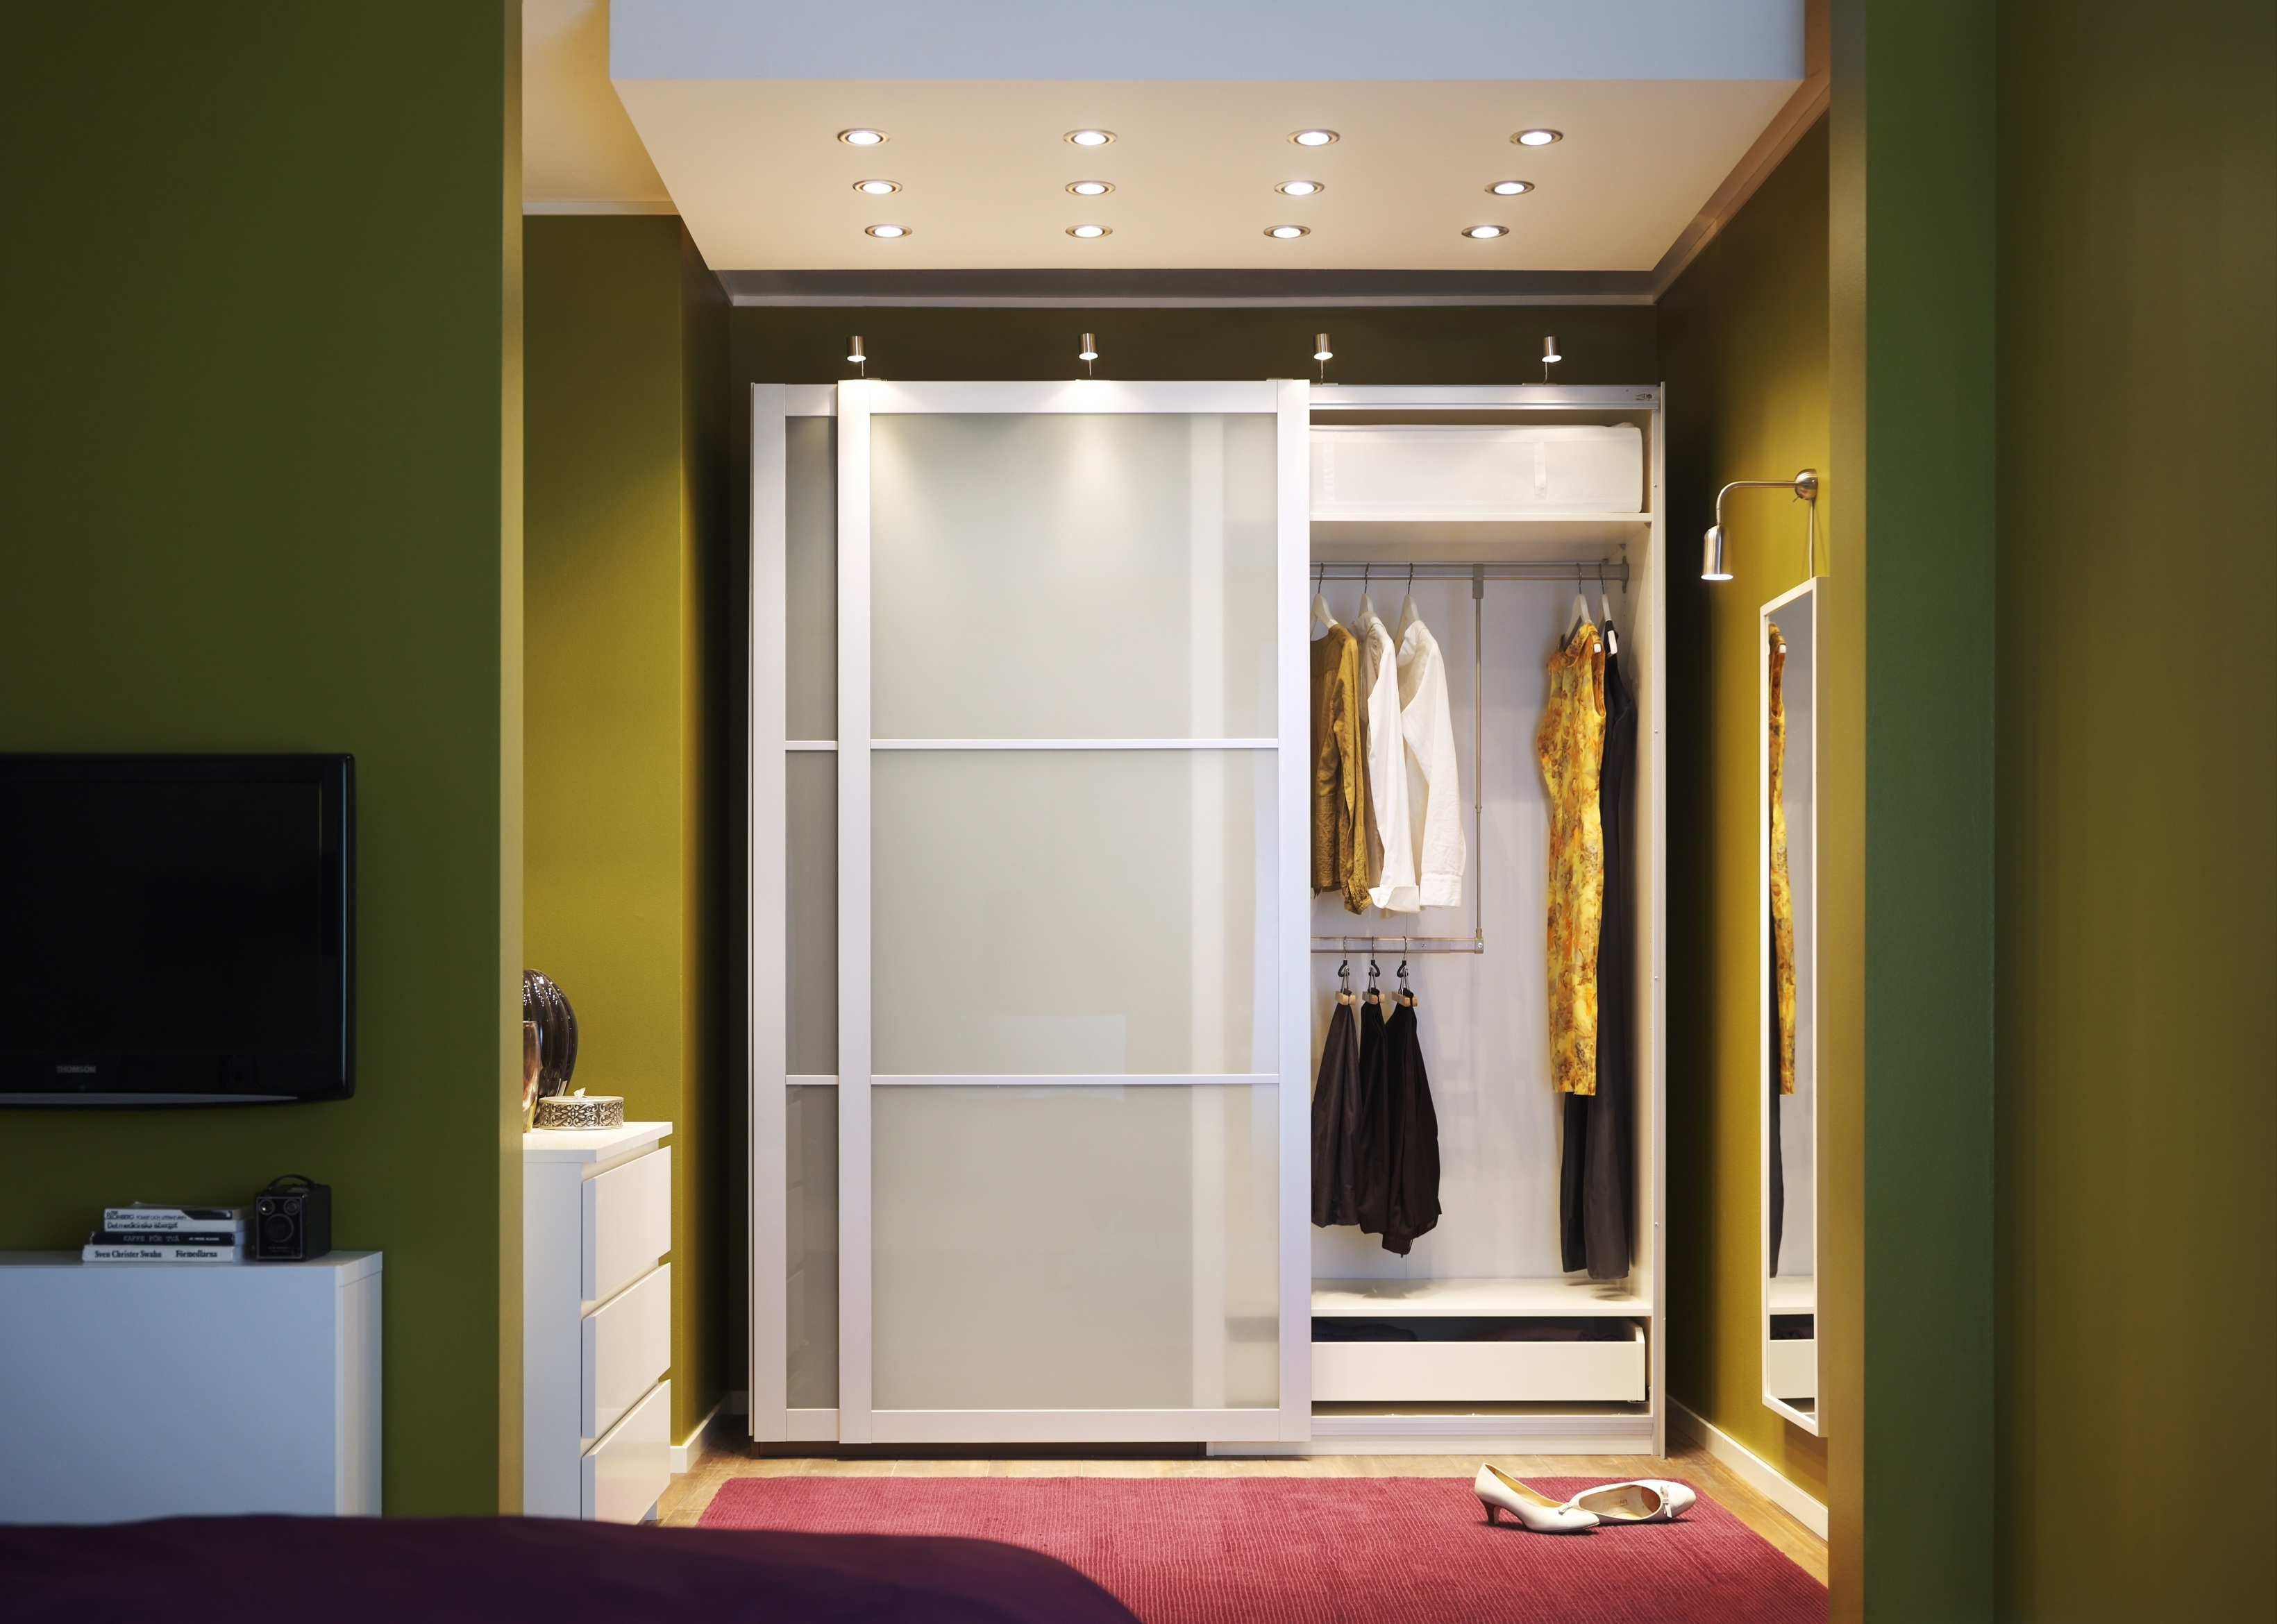 Build sliding cabinet doors - White Bedroom Sliding Closet Door Inside The Bedroom With Modern Tv And Modern Cabinet